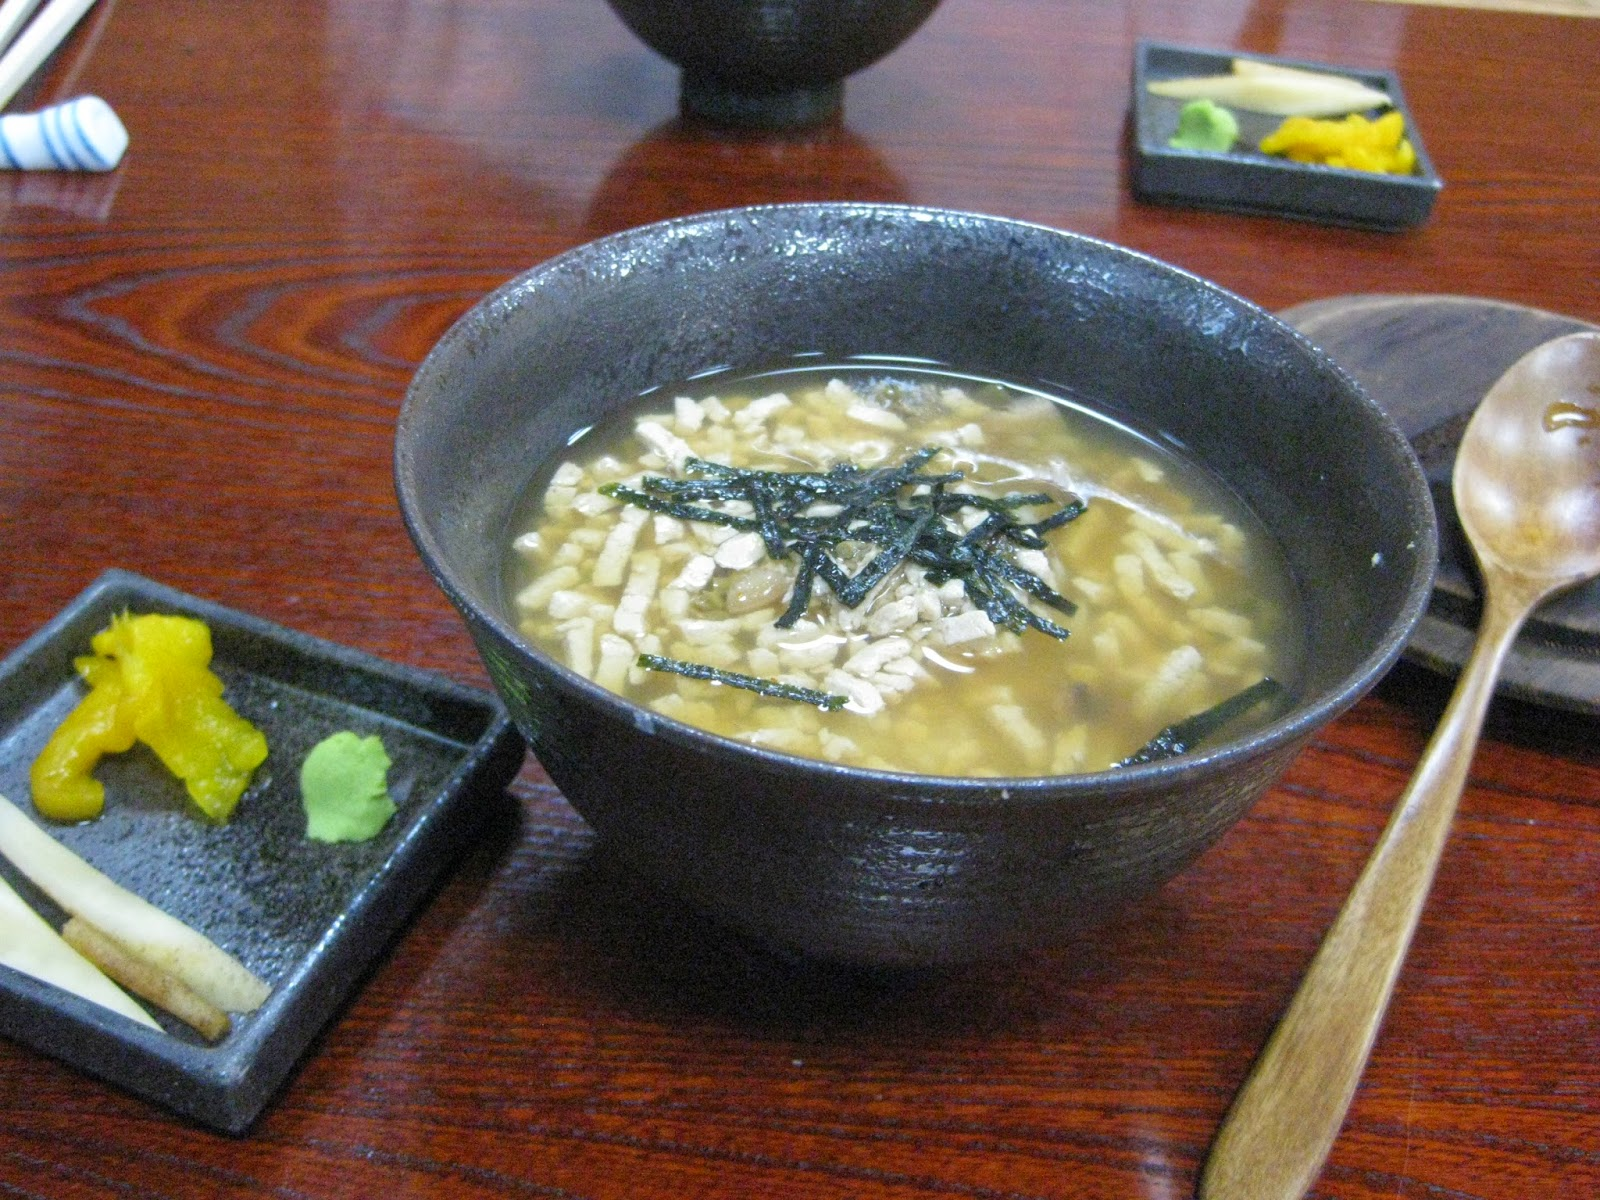 Tokyo - Tofu lunch course #6 - rice, tofu, and broth